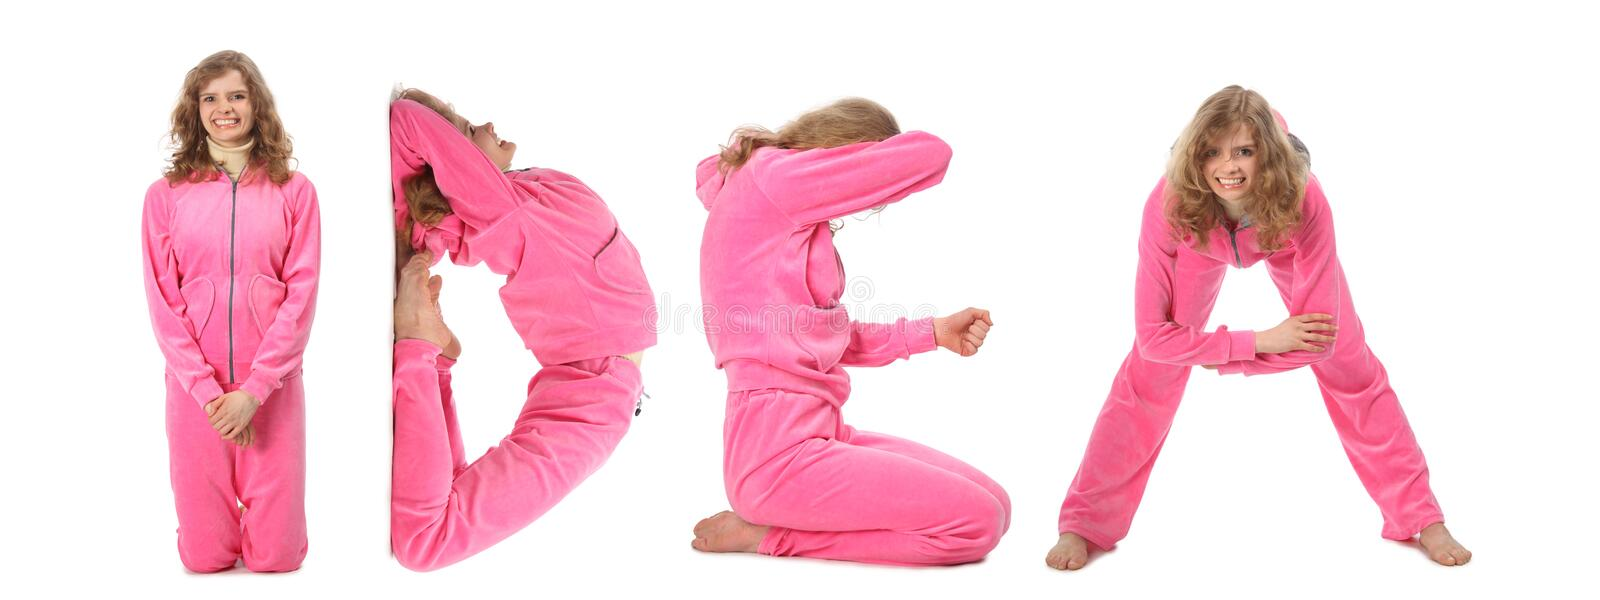 Girl in pink clothes making word IDEA, collage royalty free stock image